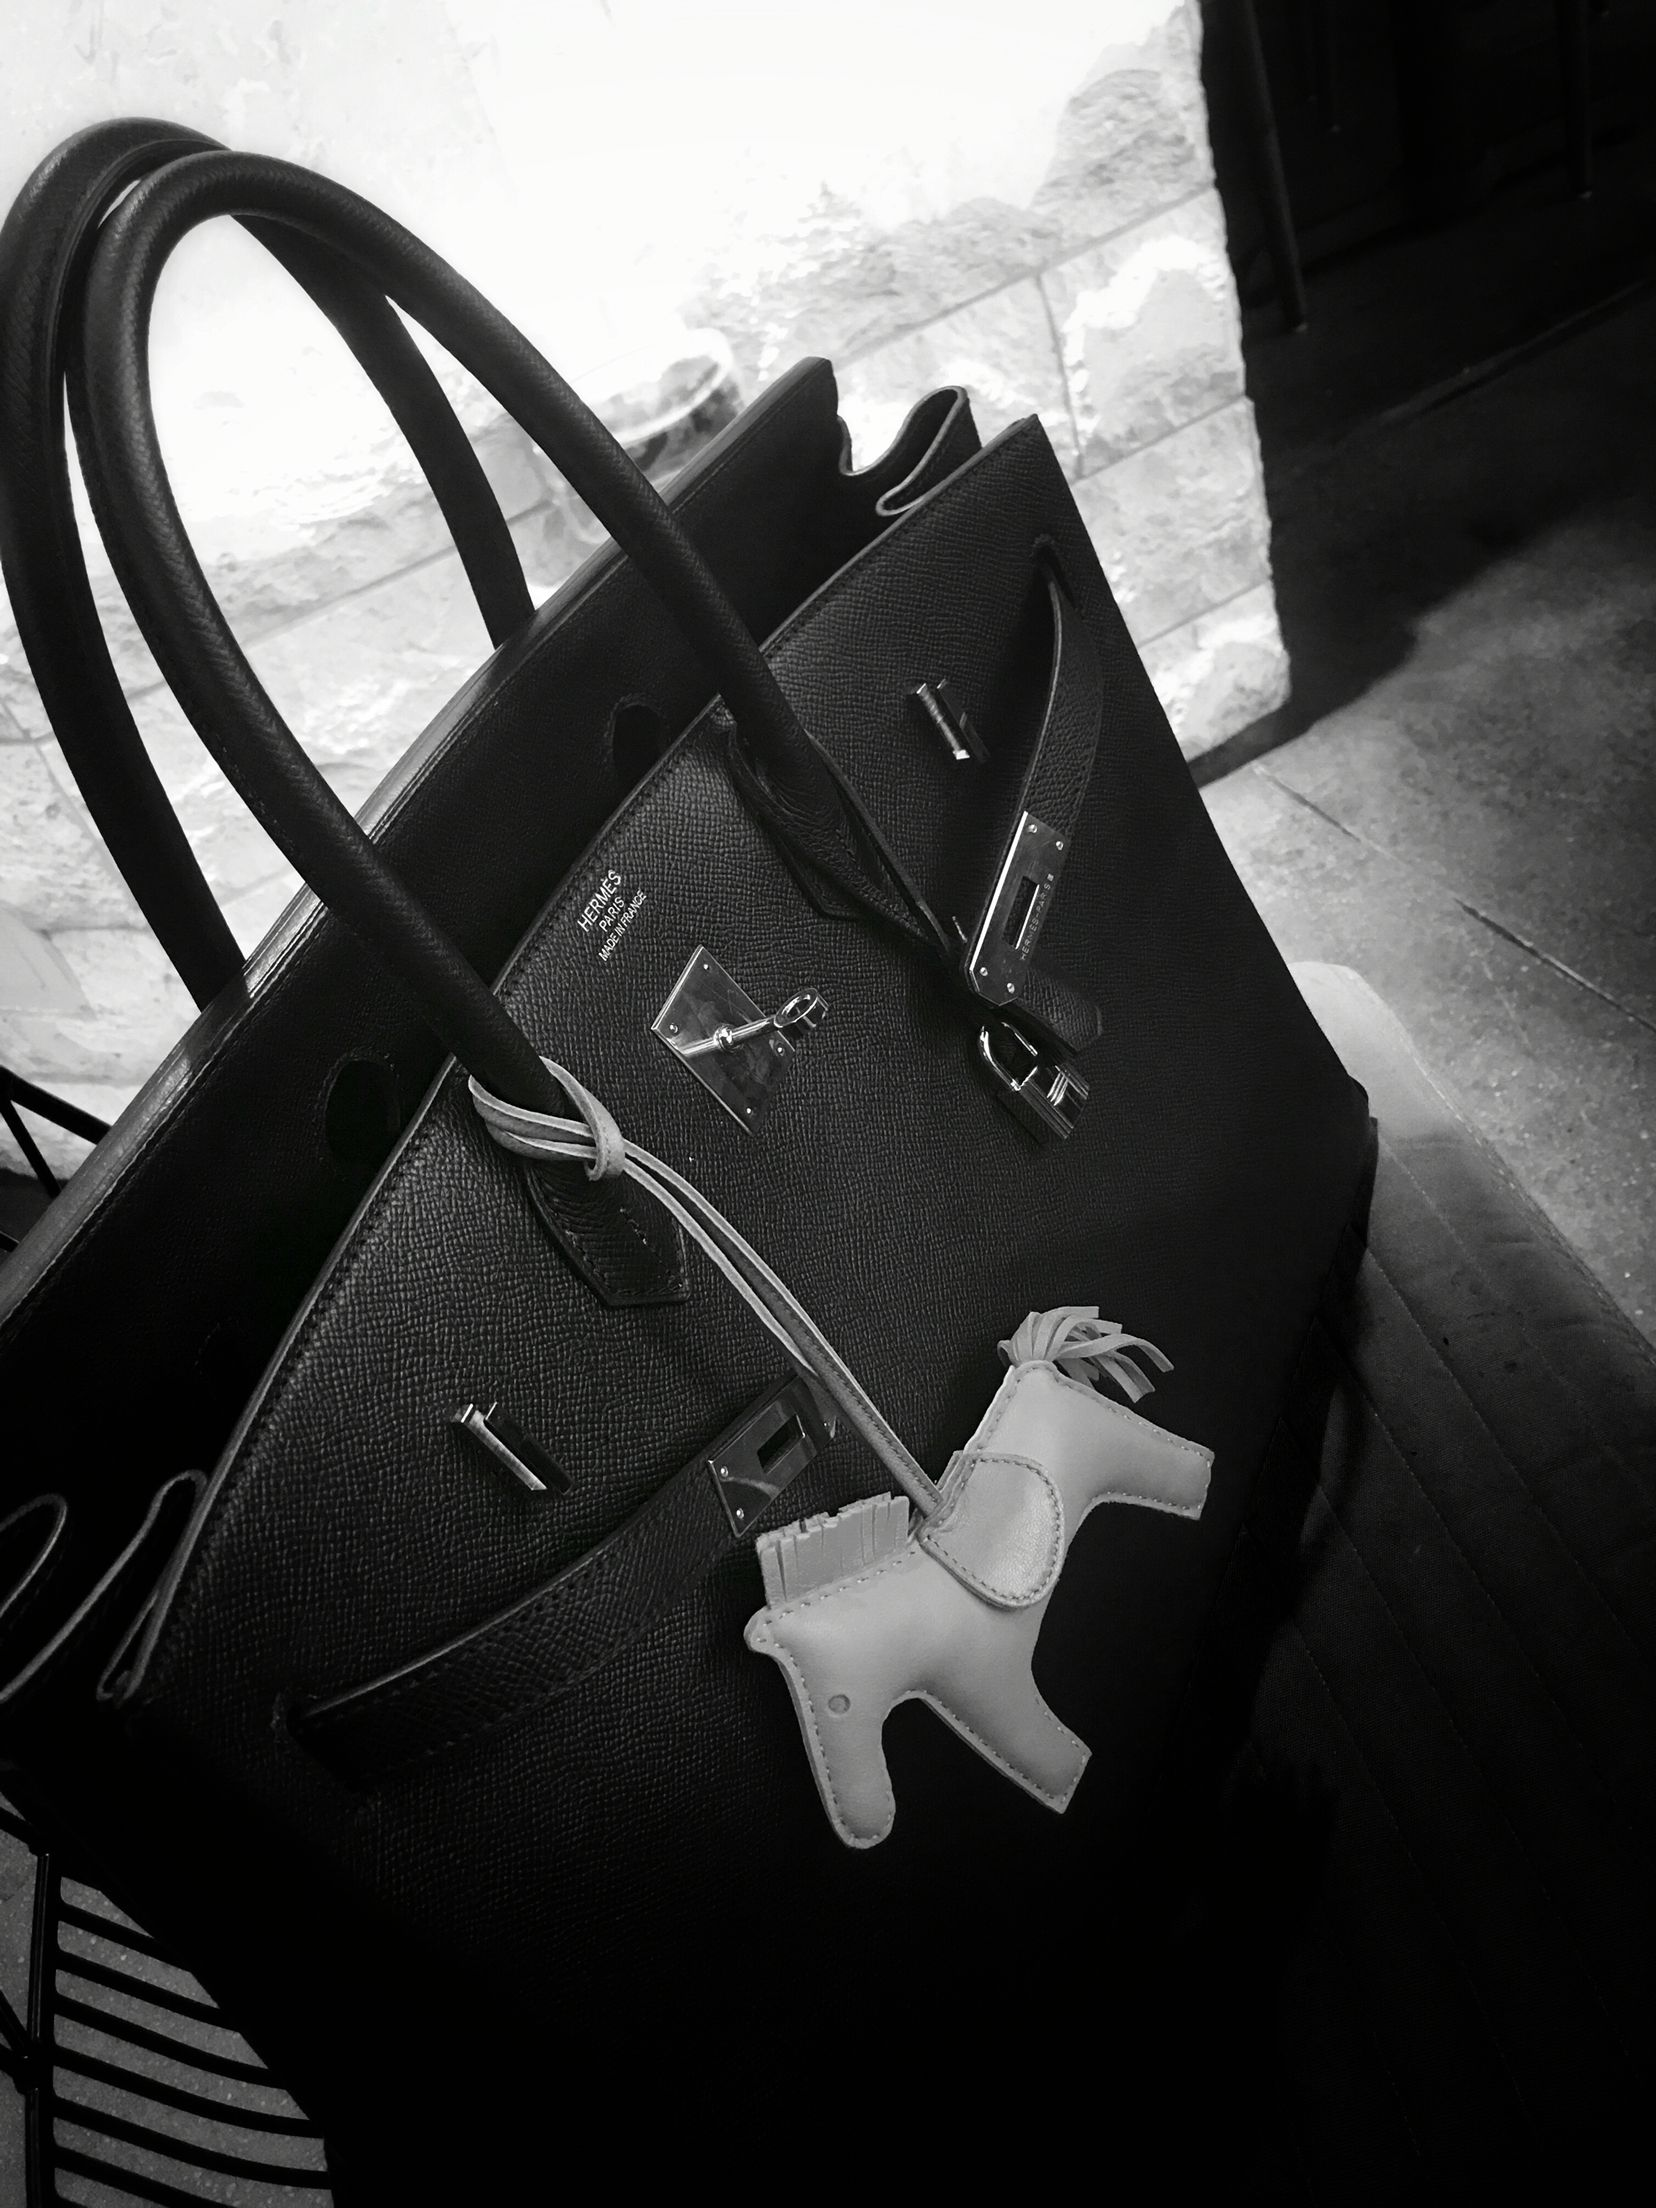 07d669d514 Hermes Birkin 40 in Noir Epsom with Rodeo Charm ❤  Classic  Coveted  Loved   madeinFrance